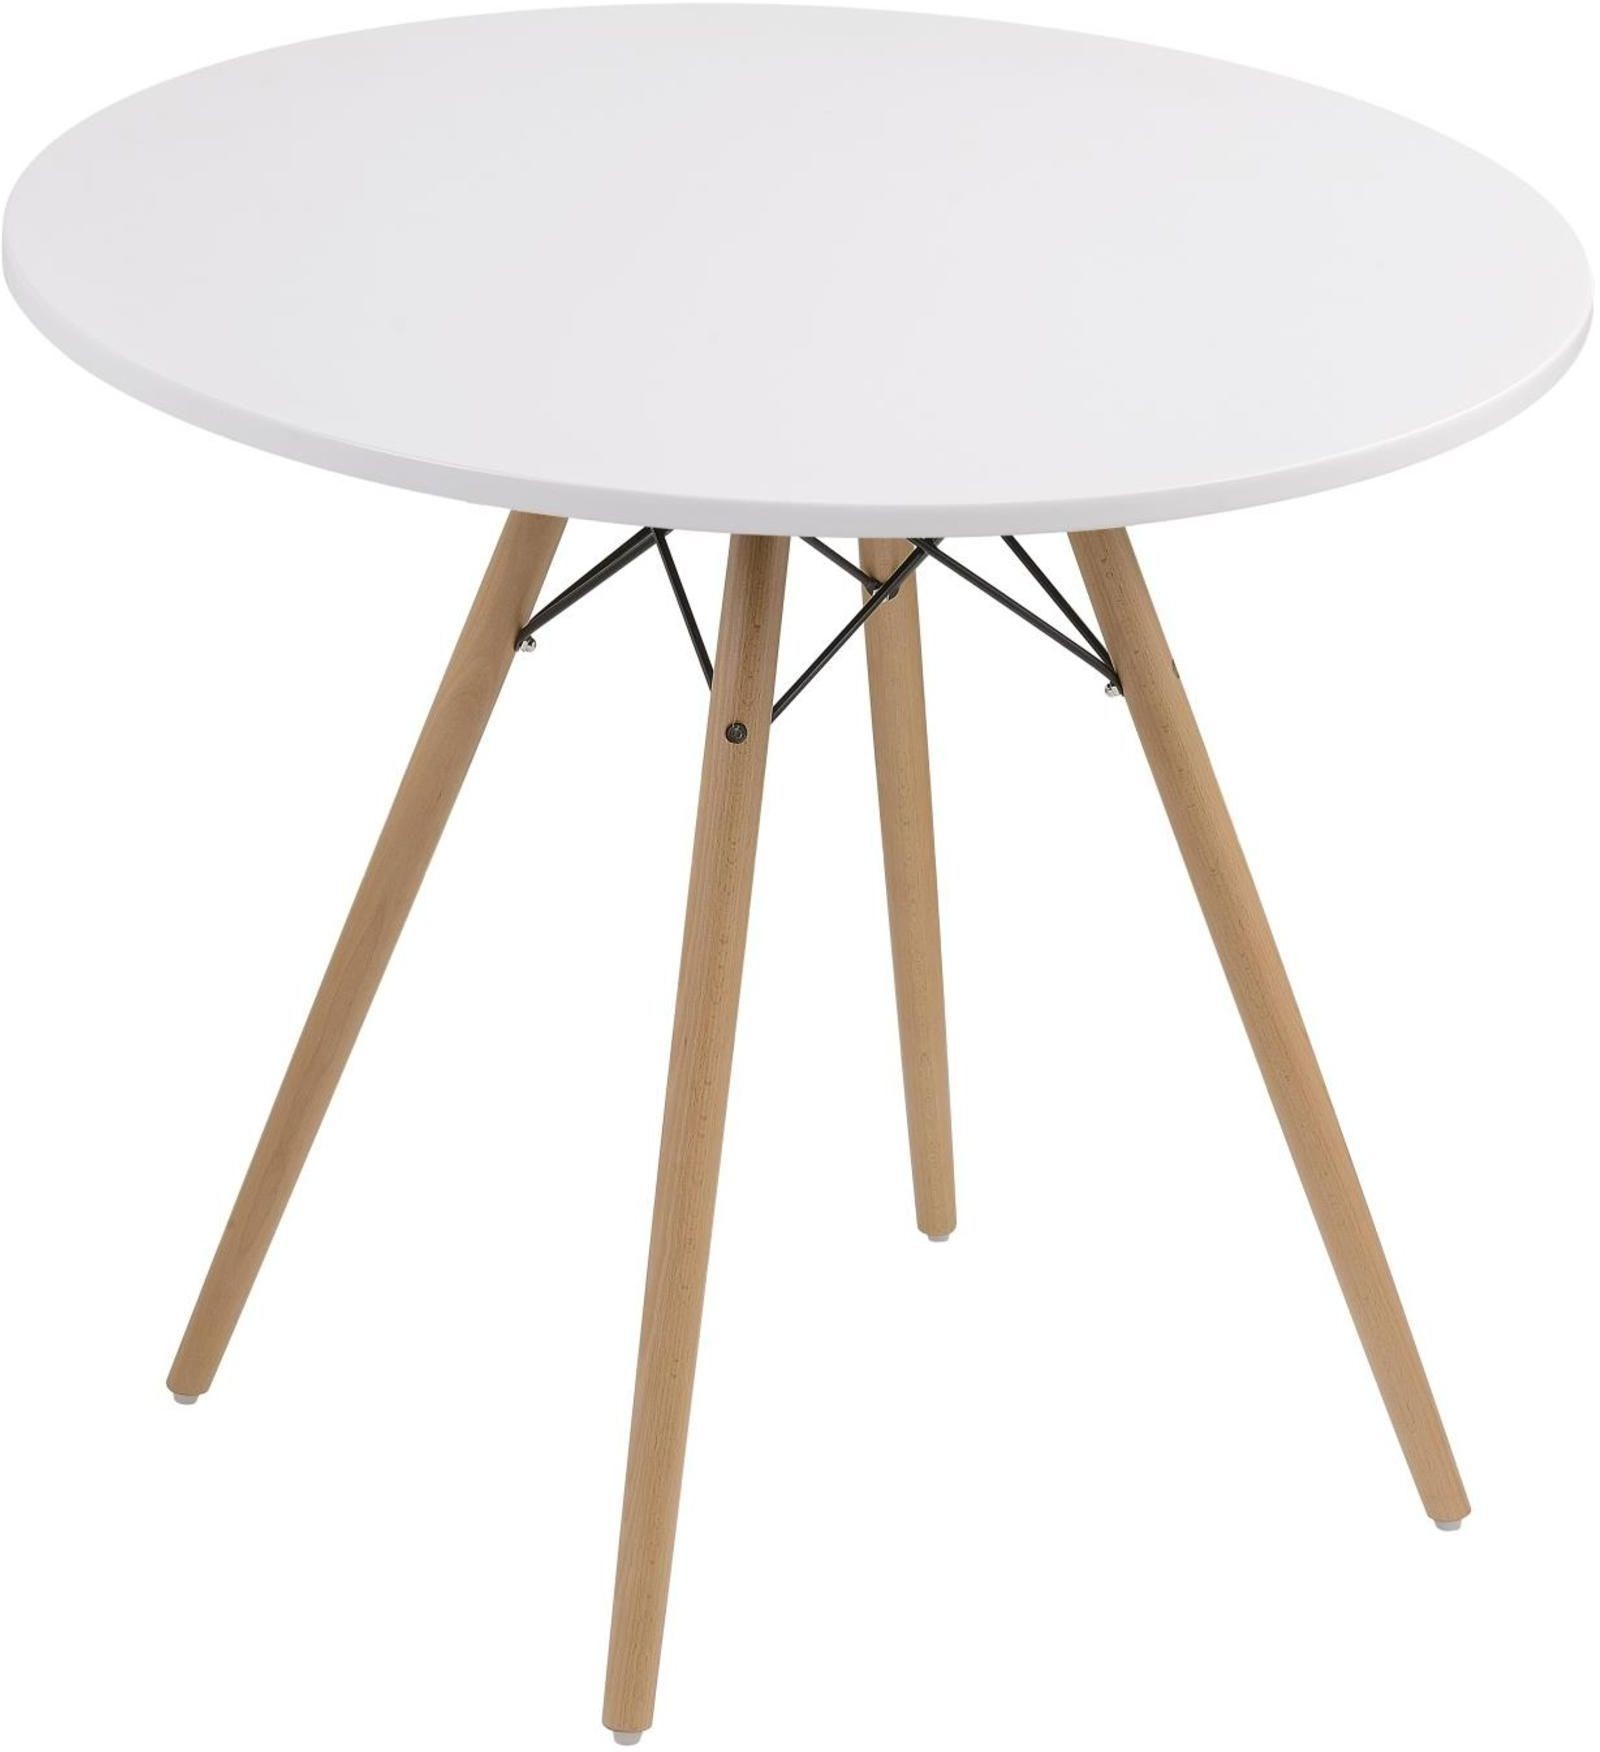 Annette White 40 Round Dining Table From Emerald Home Coleman Furniture